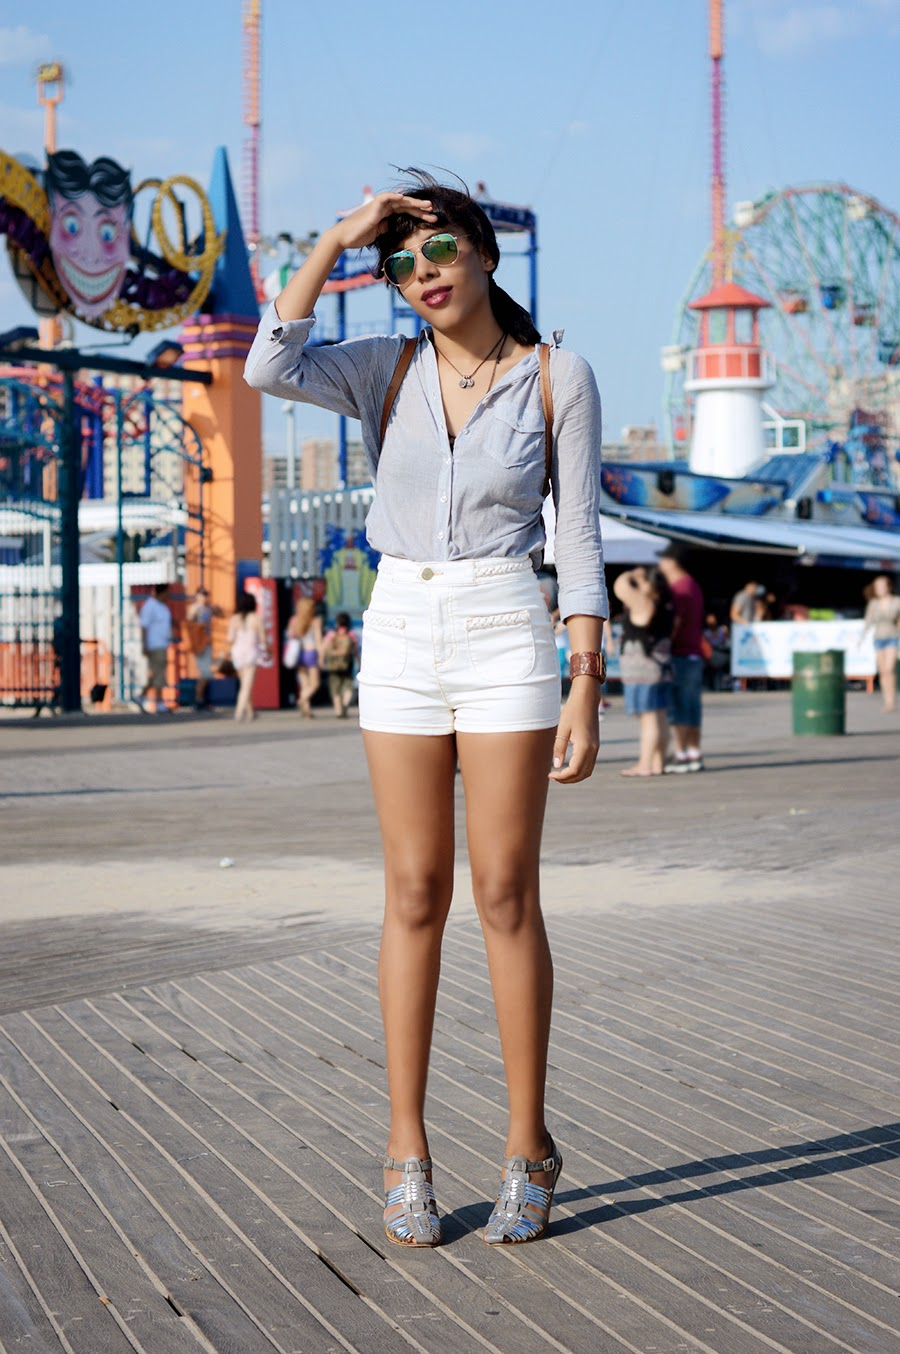 Indie Fashion Blogger Anais Alexandre of Down to Stars in a preppy outfit made punk by dark lipstick and leather cuffs on a day trip to Coney Island